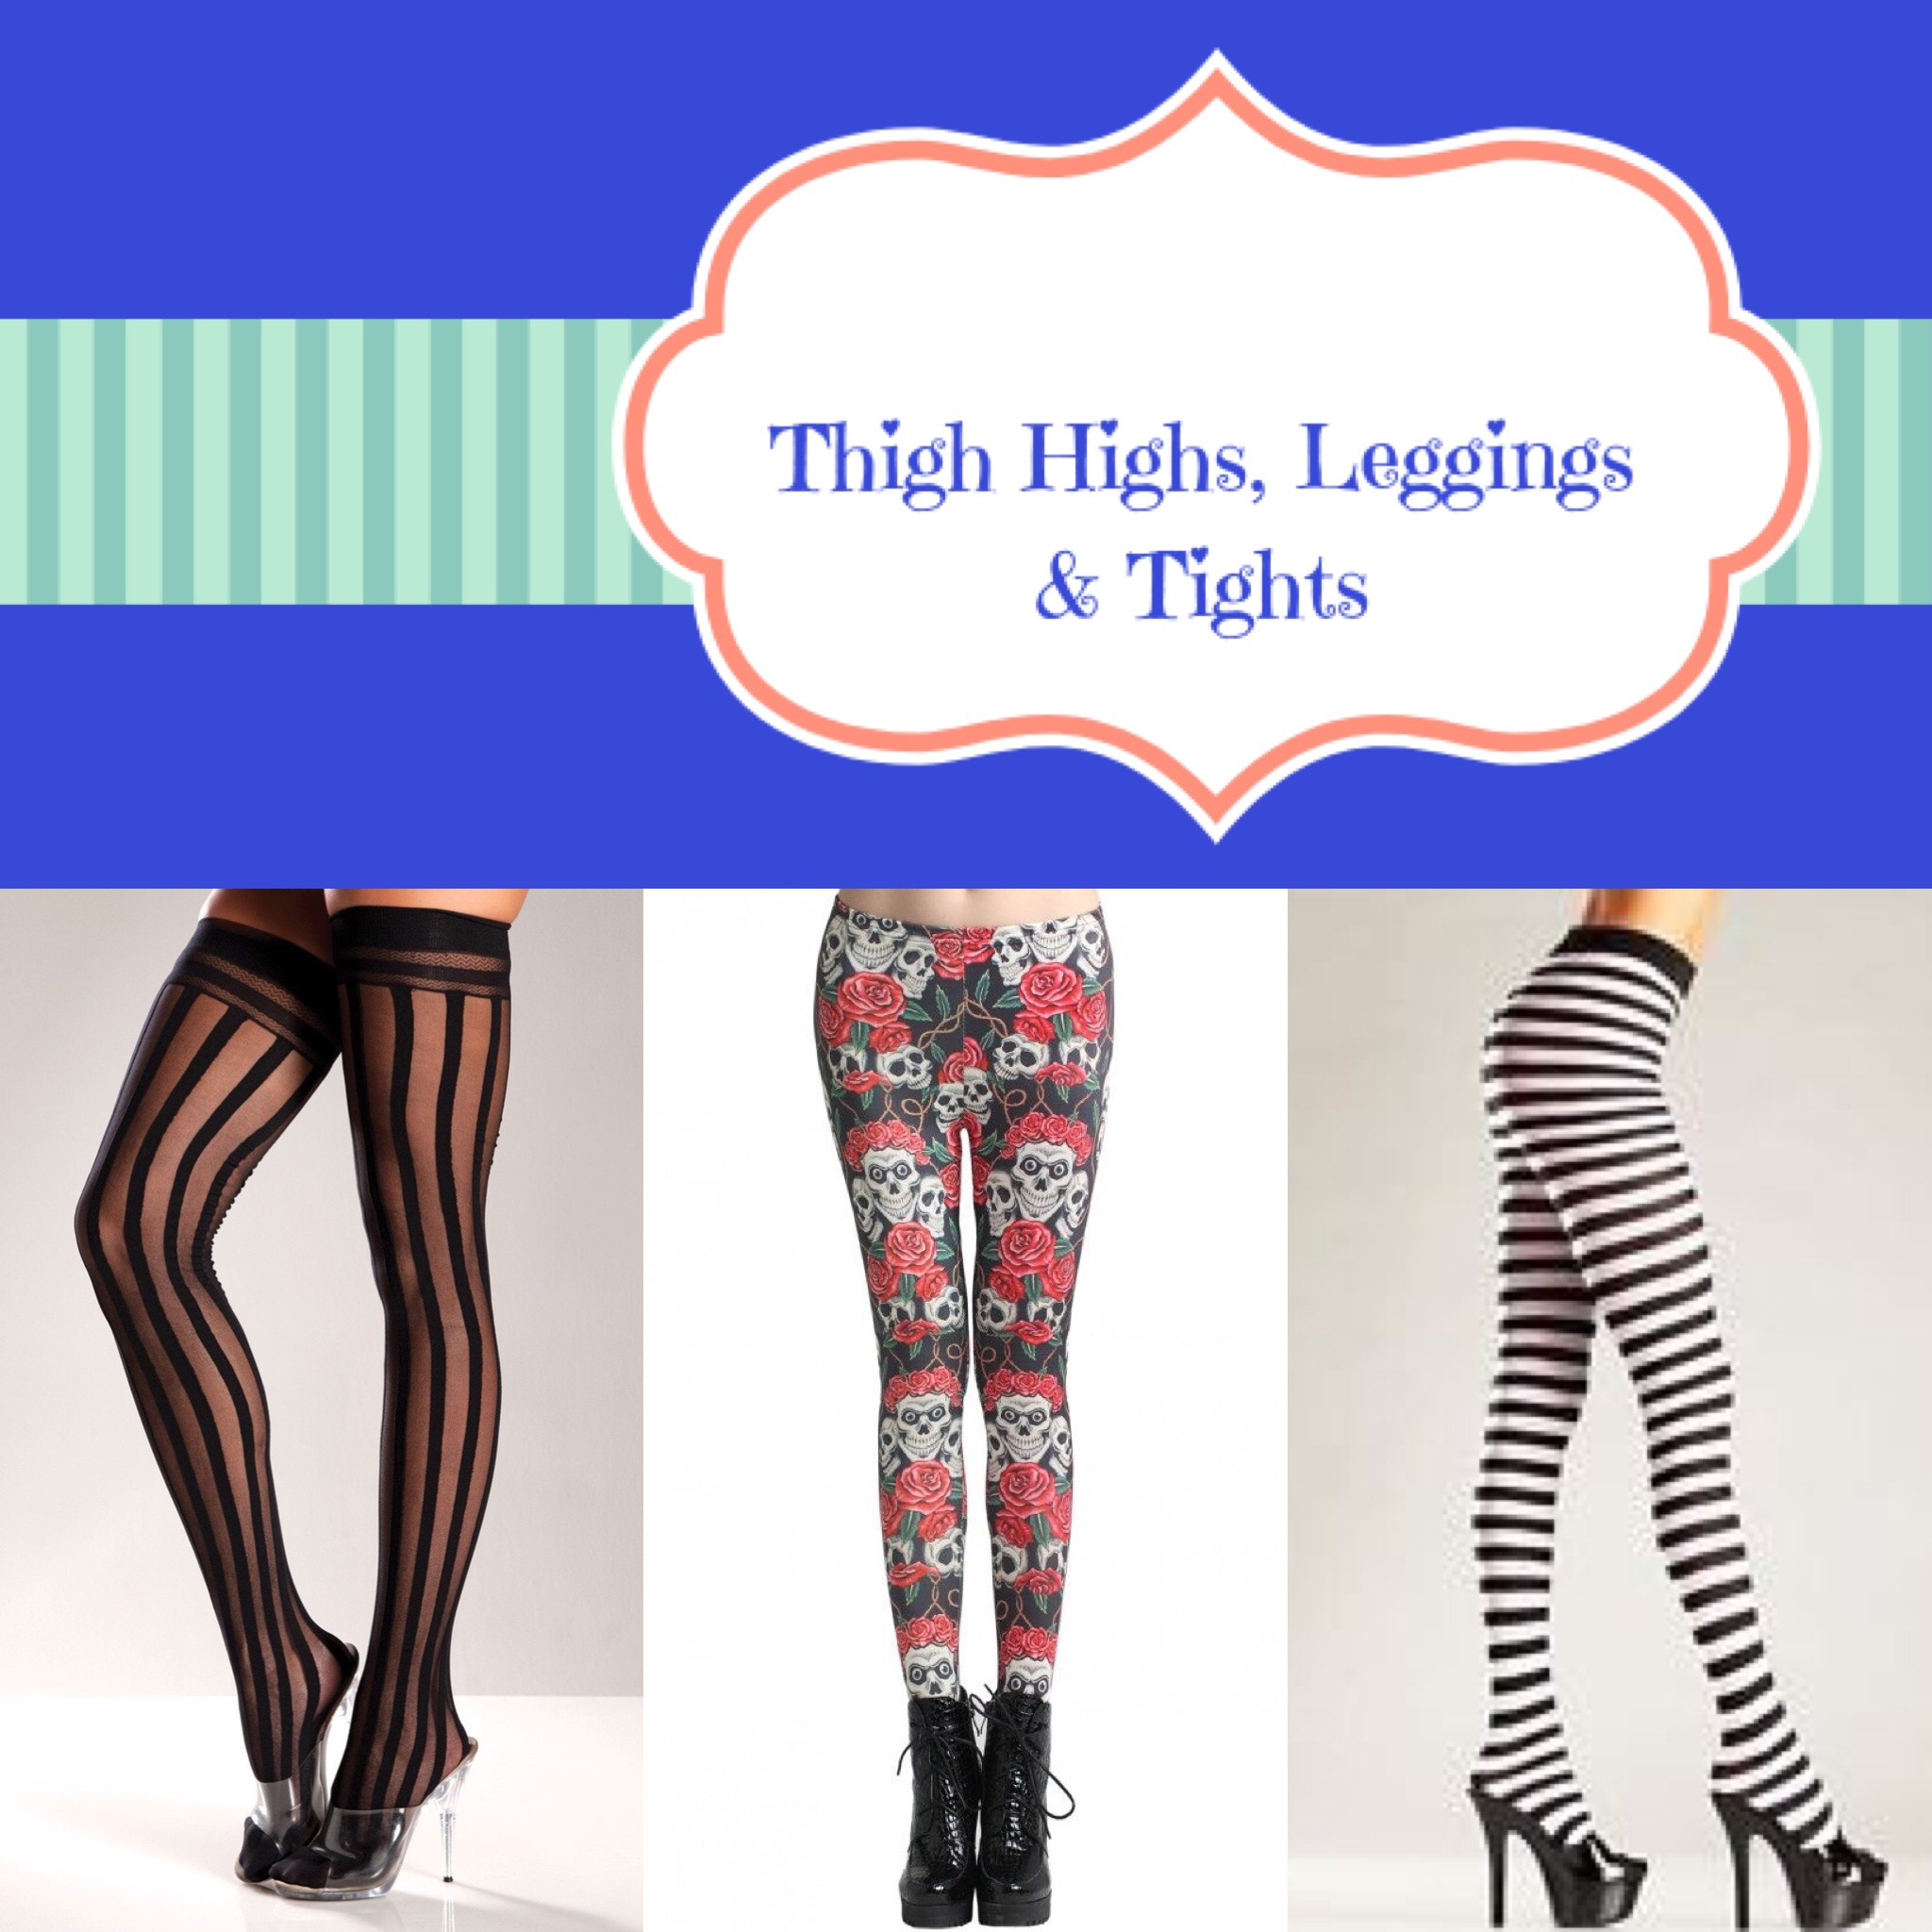 Thigh Highs, Leggings & Tights